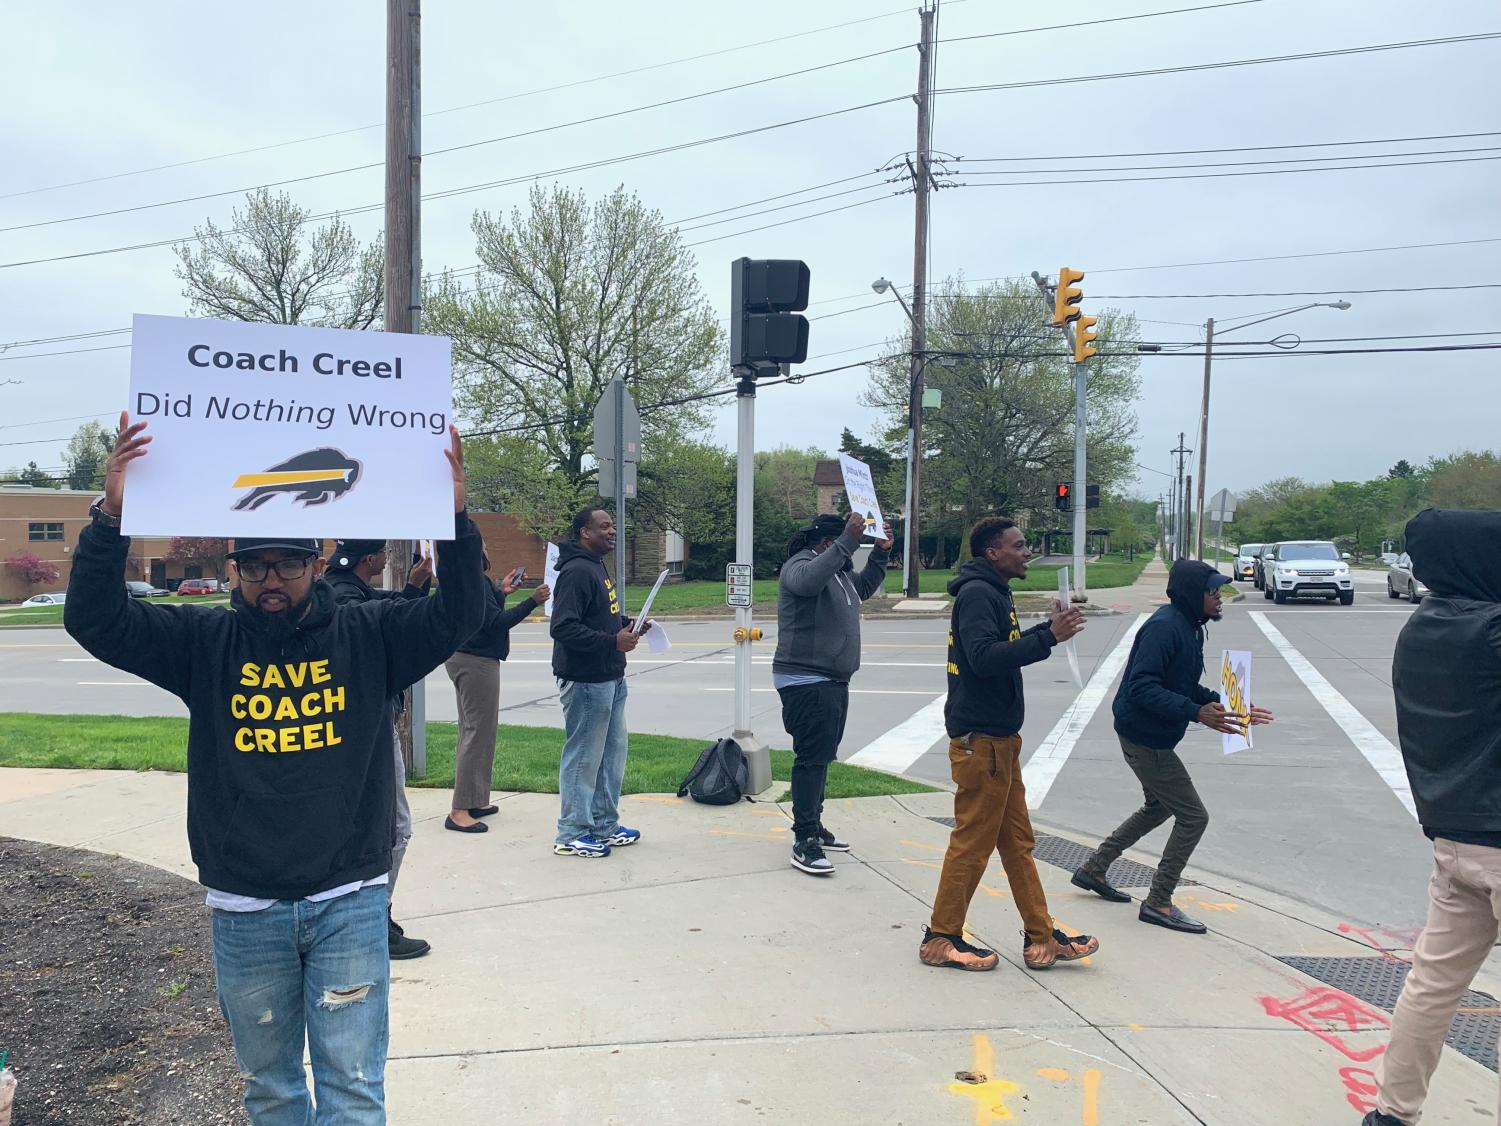 On Friday, May 10, protesters rallied at the corner of Fairmount and Richmond wearing sweatshirts reading 'Save Coach Creel' and handing out flyers demanding he be reinstated. Photo by Orly Einhorn